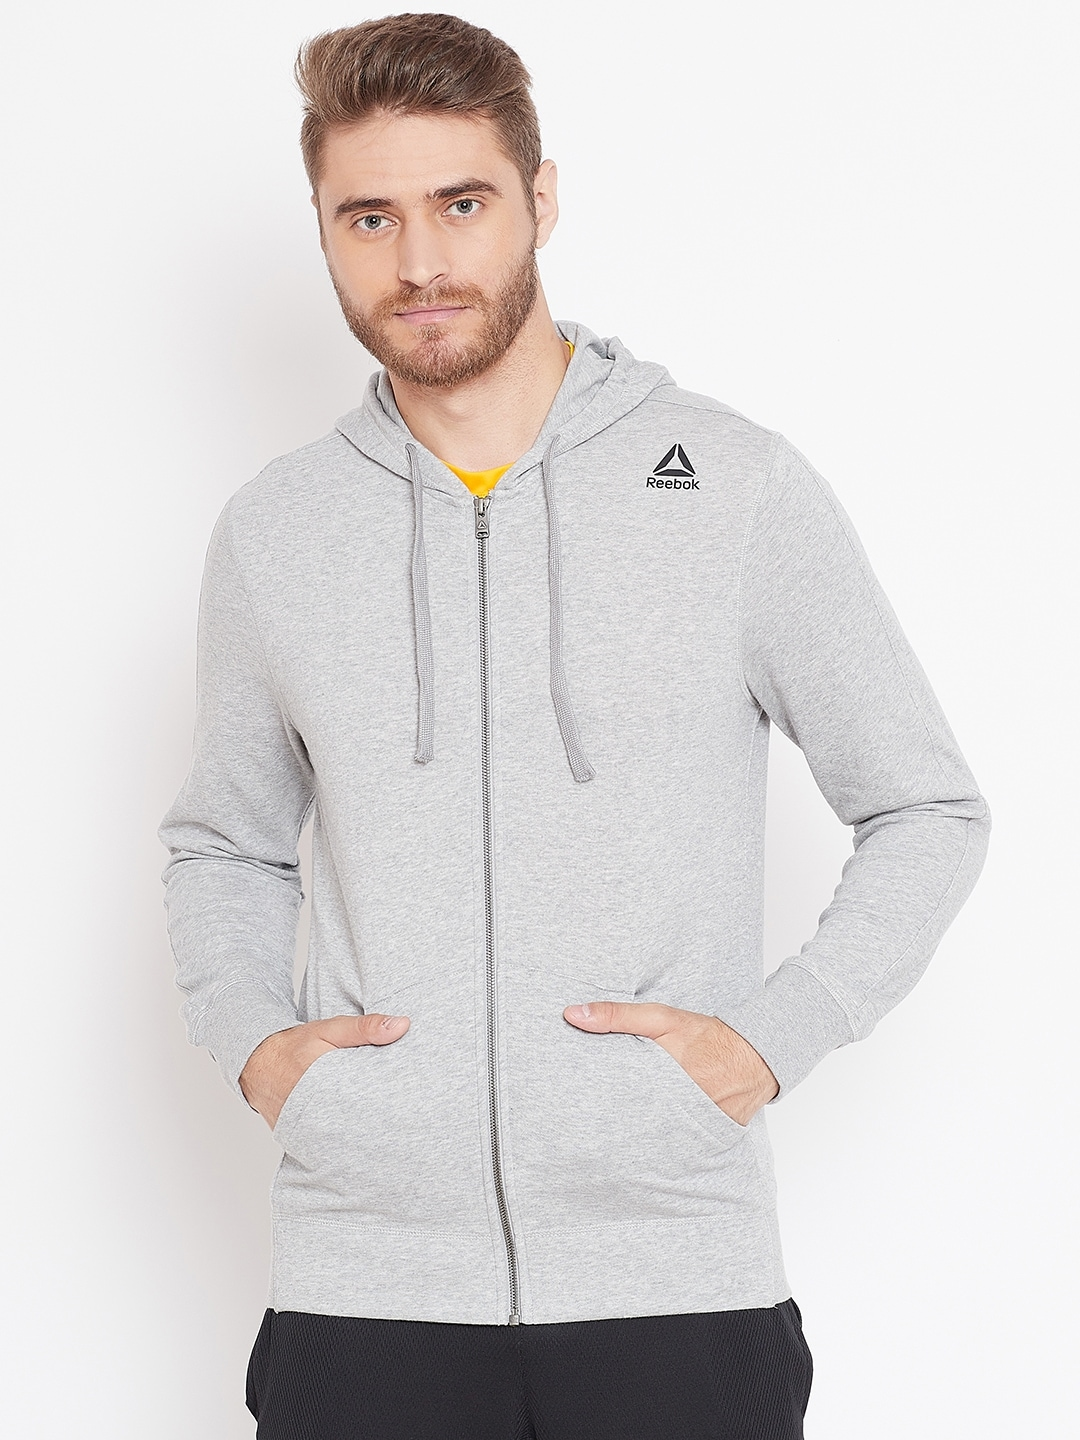 7bc966d2 Reebok Men Grey Melange Solid Training Essentials FZ Hooded Sweatshirt